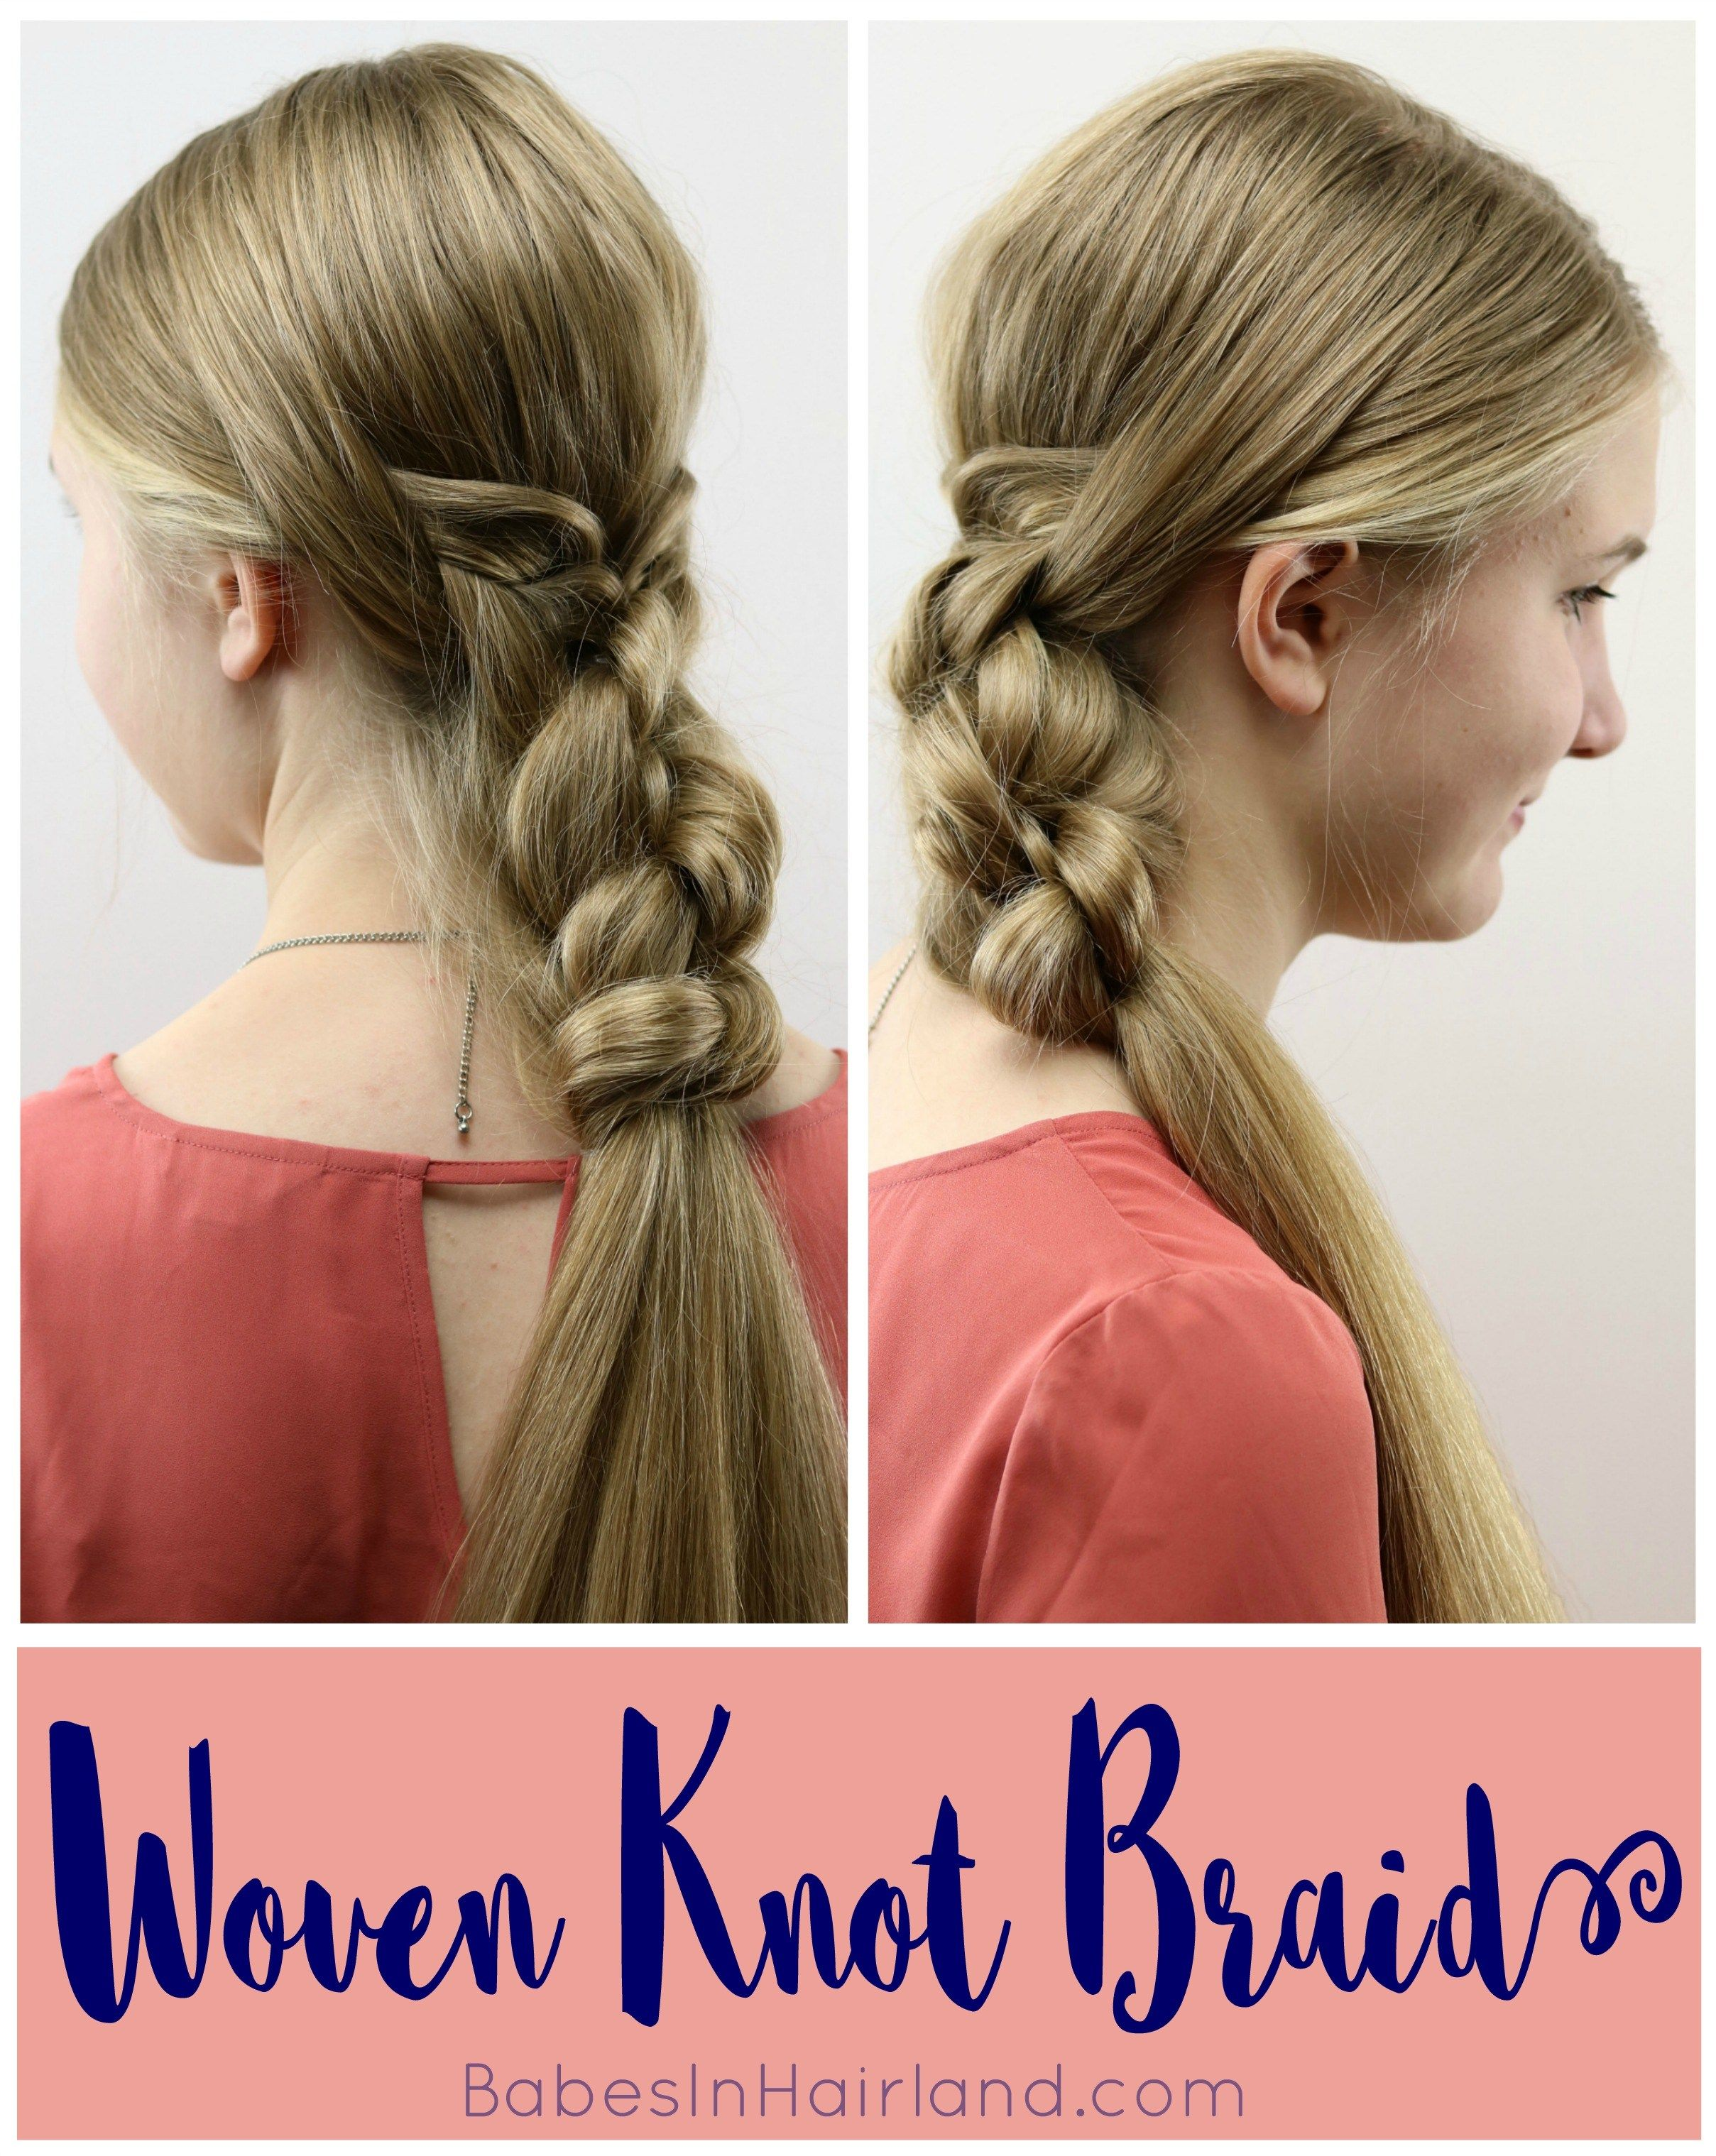 Woven Knot Braid Hairstyle